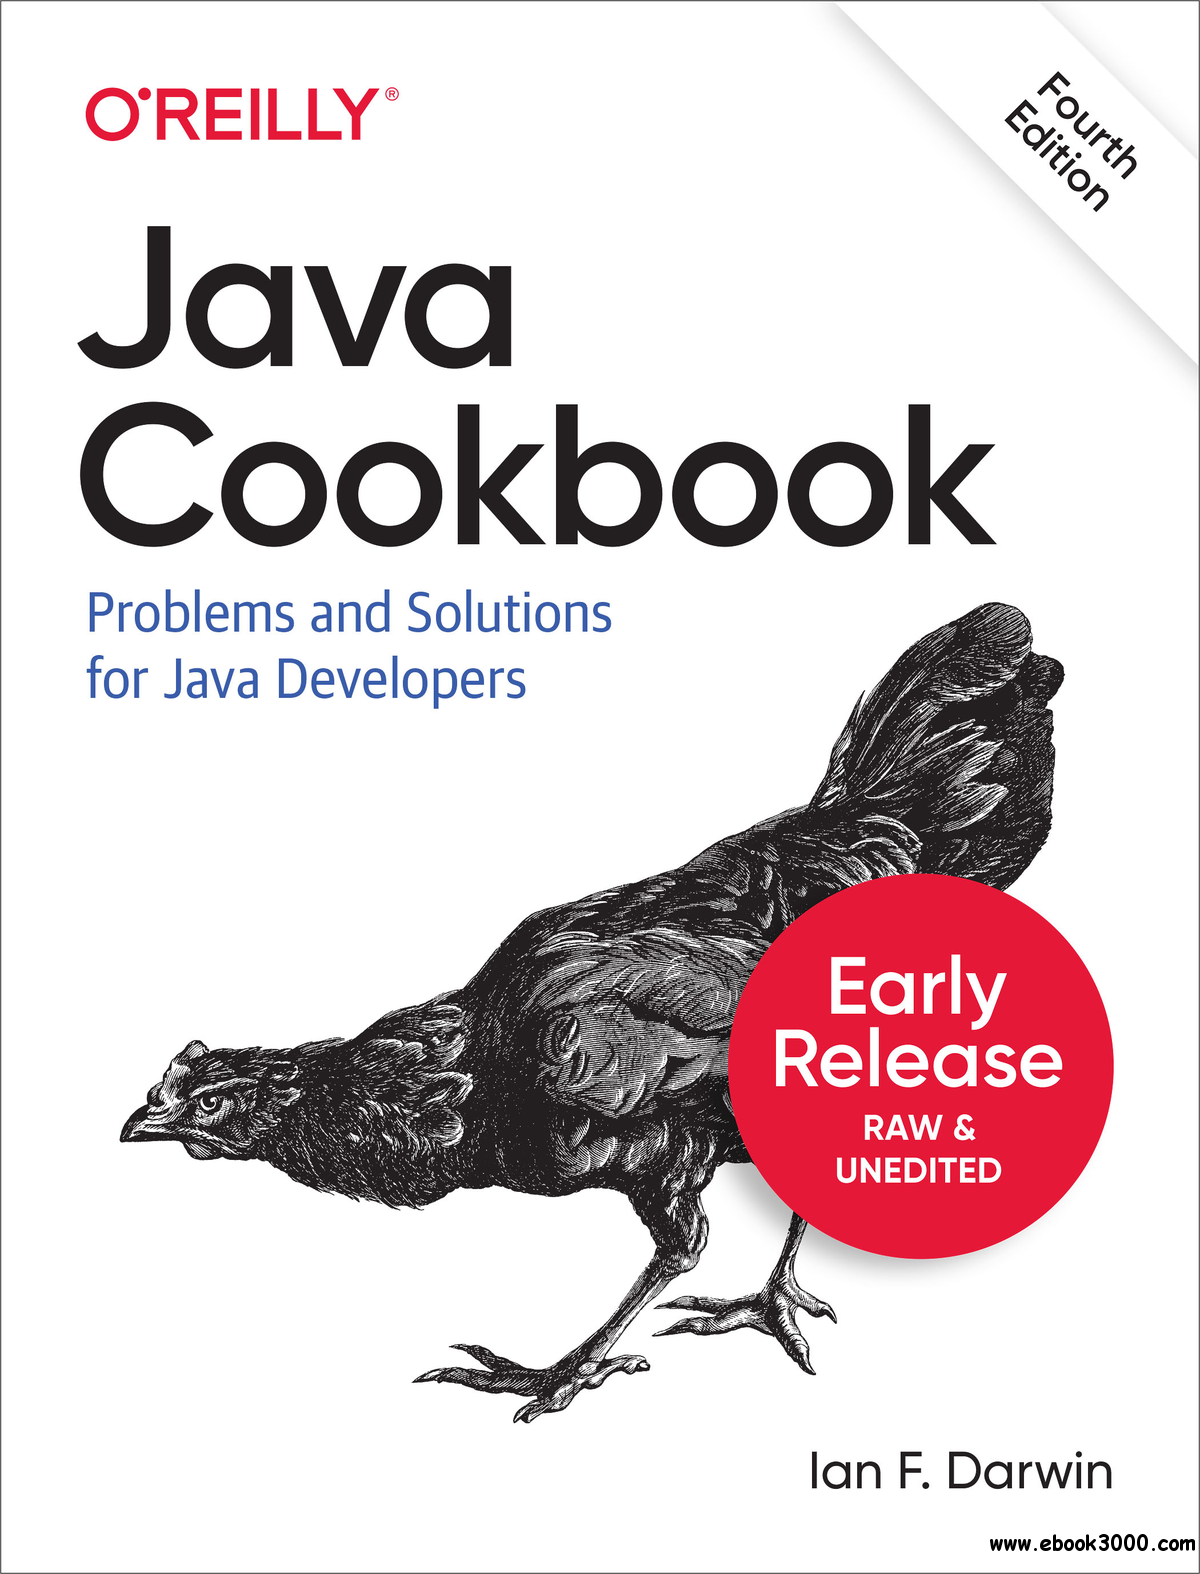 Java Cookbook, 4th Edition [Early Release]